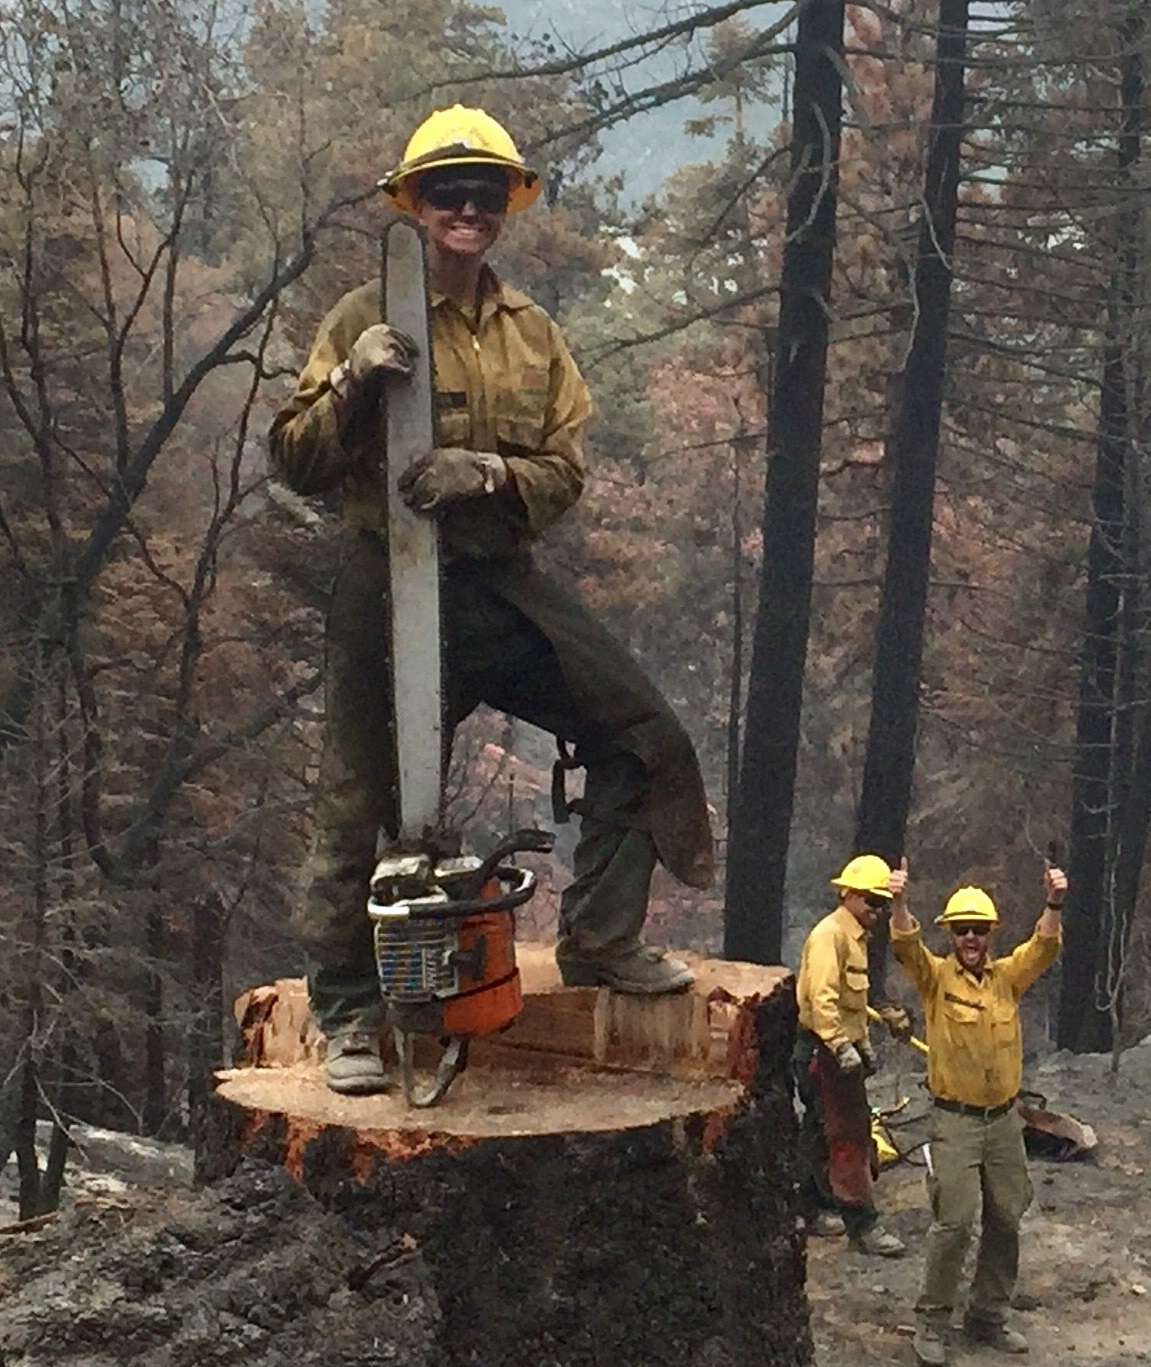 Brown with members of her Heaps Peak Helitack crew clearing scorched hazard trees. USDA Forest Service photo.